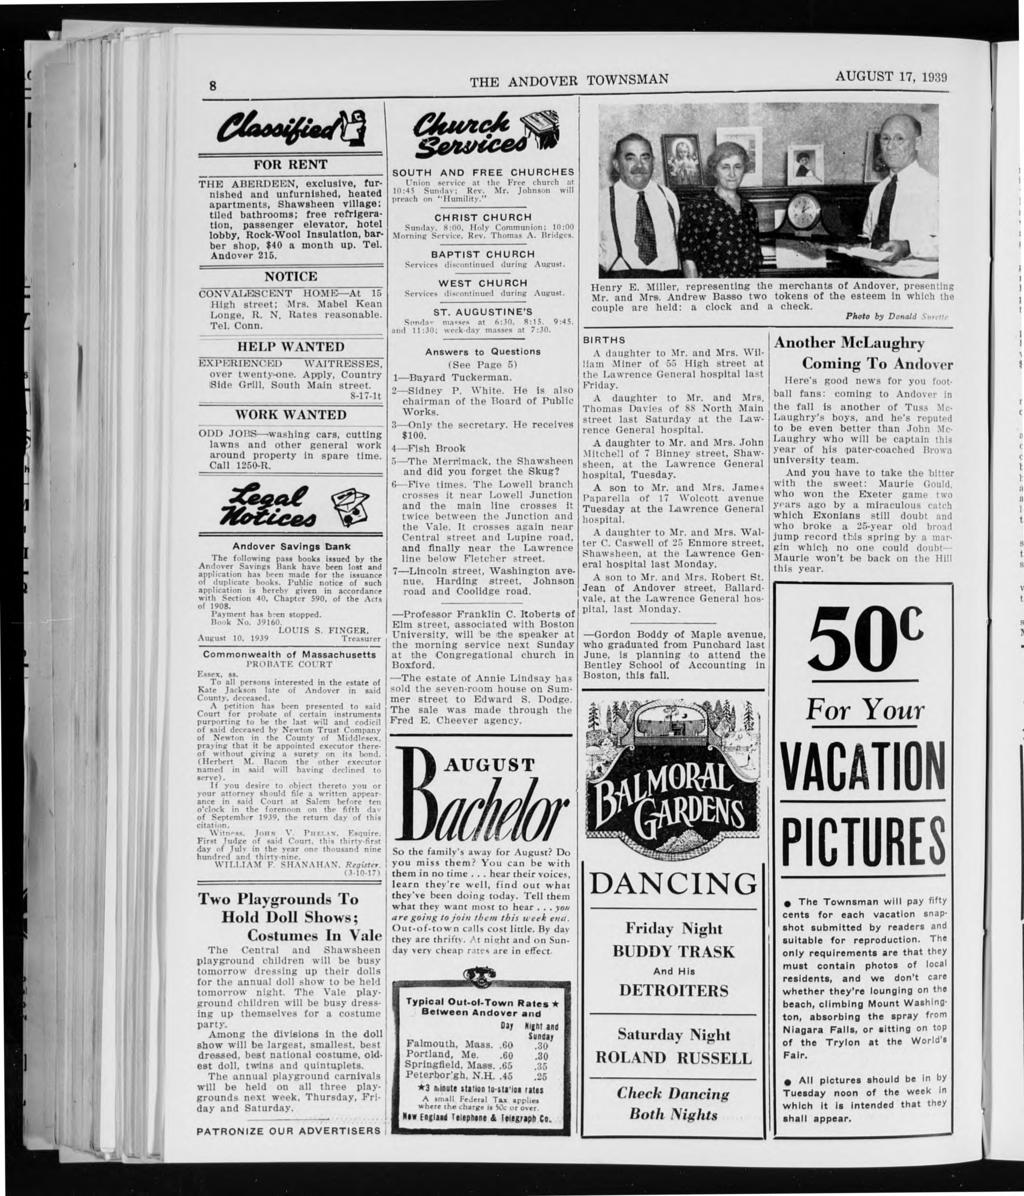 8 THE ANDOVER TOWNSMAN AUGUST 17, 1939 ti FOR RENT THE ABERDEEN, exclusive, furnished and unfurnished, heated apartments, Shawsheen village: tiled bathrooms; free refrigeration, passenger elevator,